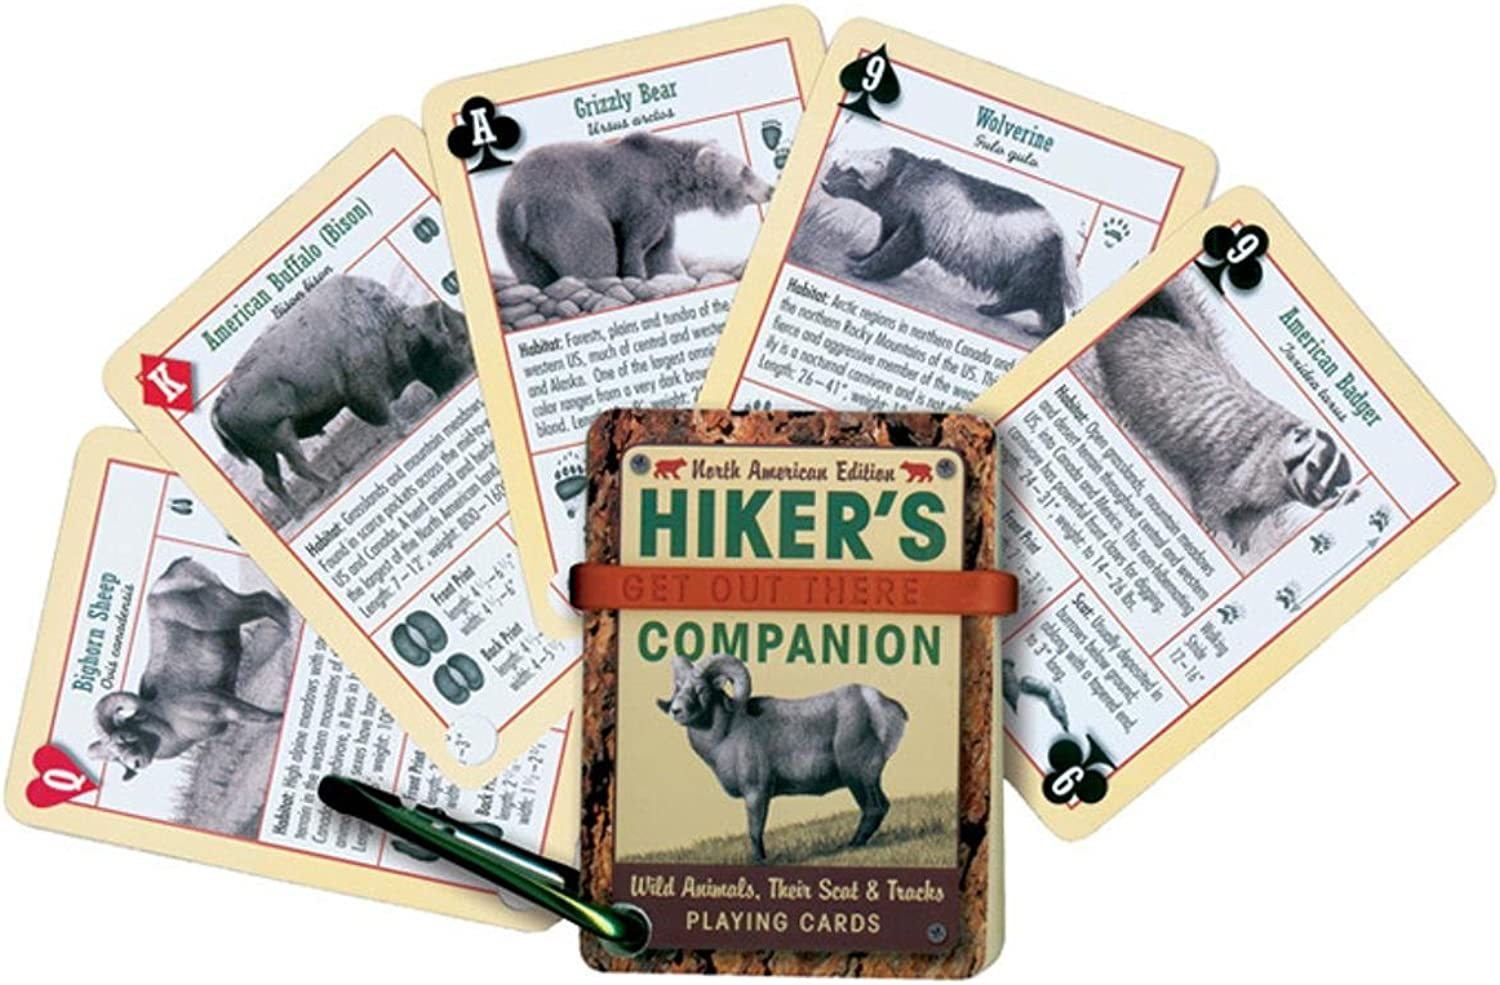 Inkstone Design, Inc Hikers Companion Playing Cards by INKSTONE DESIGN, INC